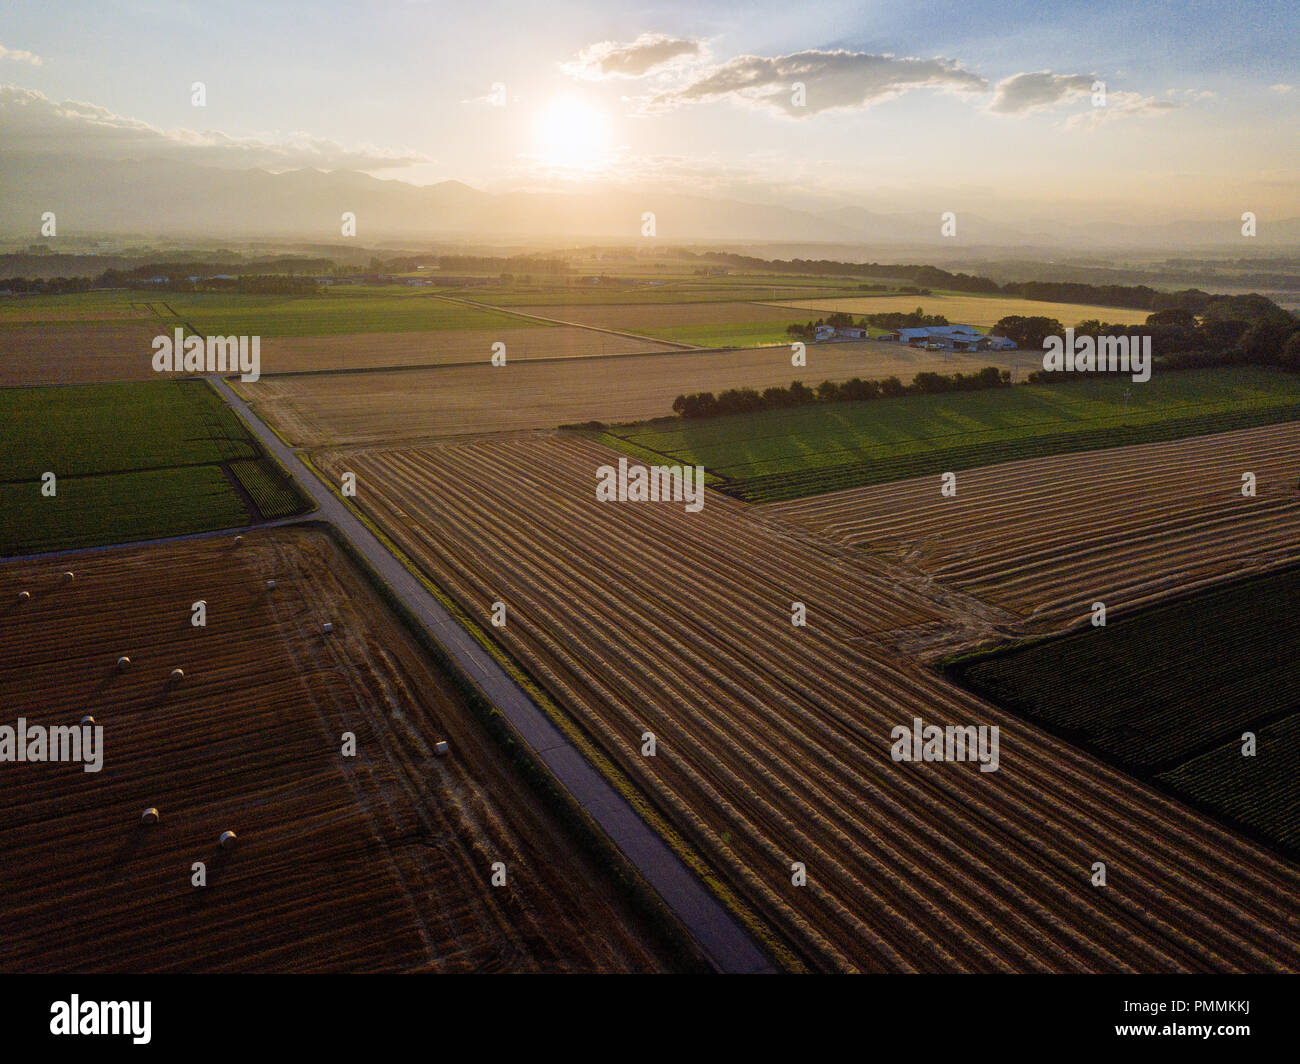 Aerial Phography of Wheat Field - Stock Image